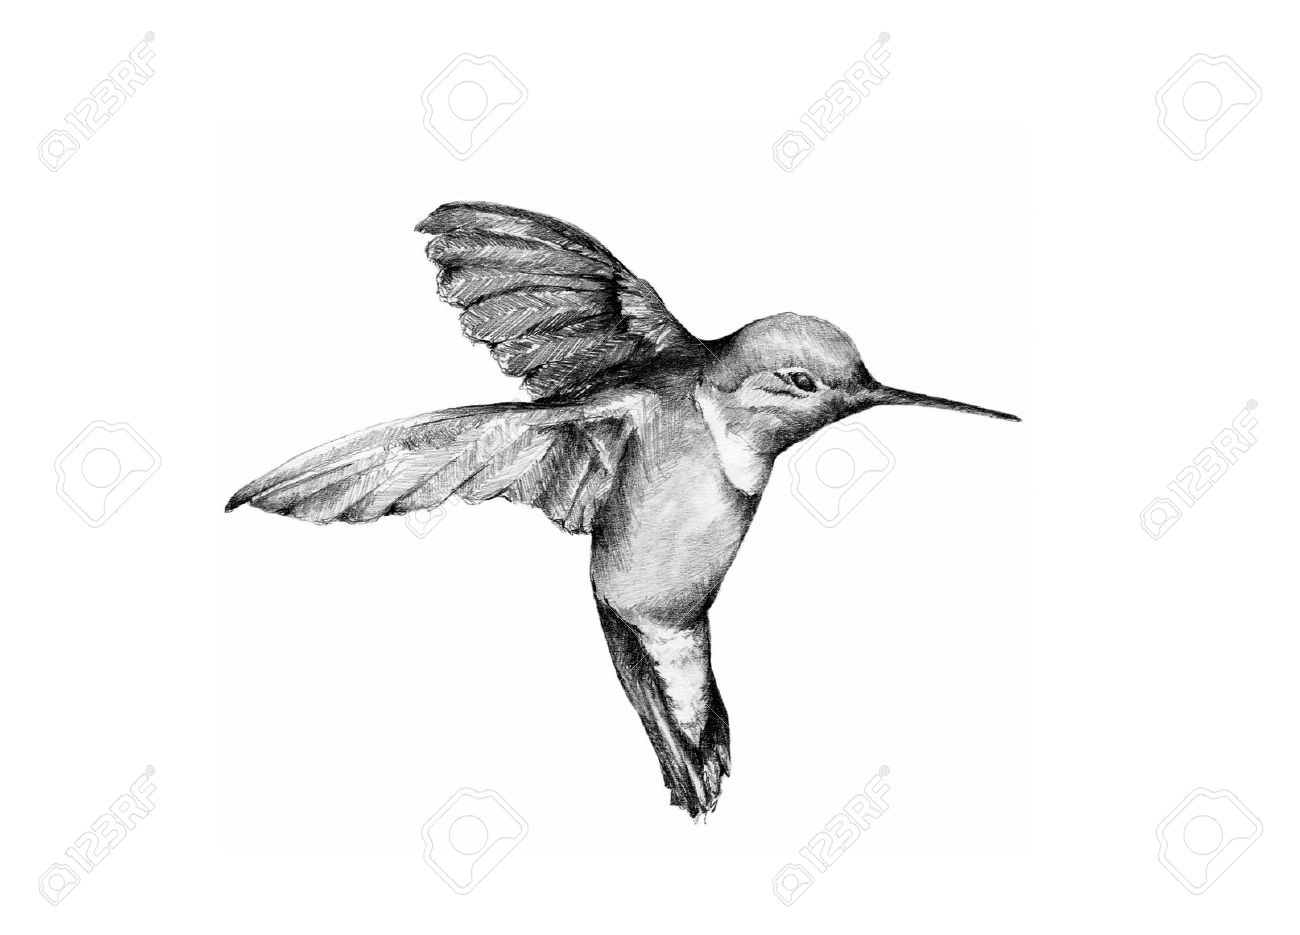 Sketches of hummingbirds